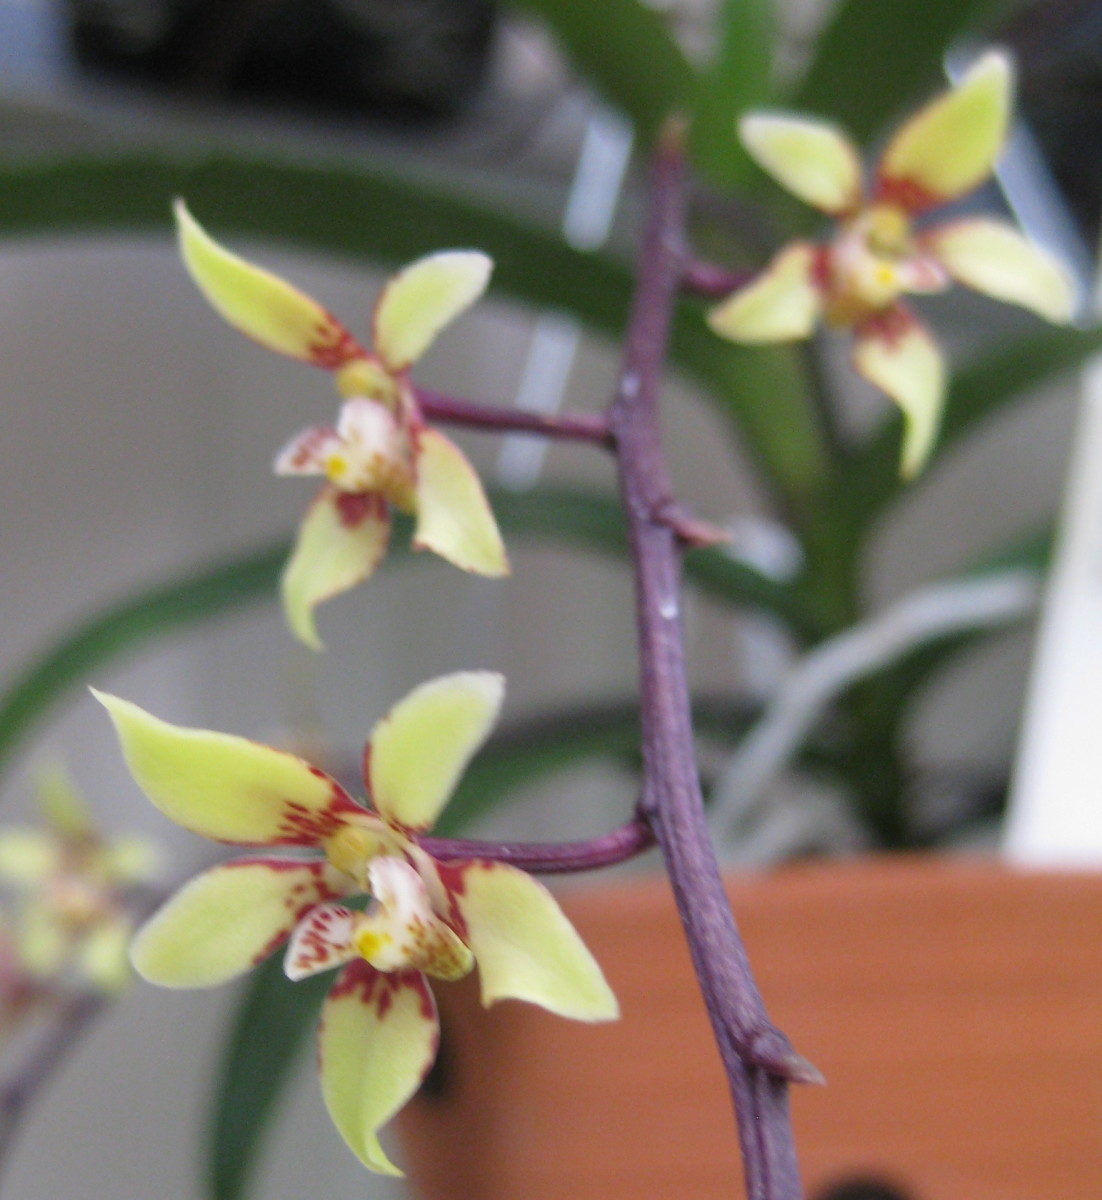 Plectochilus, third prize winner at the 2011 Sarcochilus Show in Taradale, Napier.